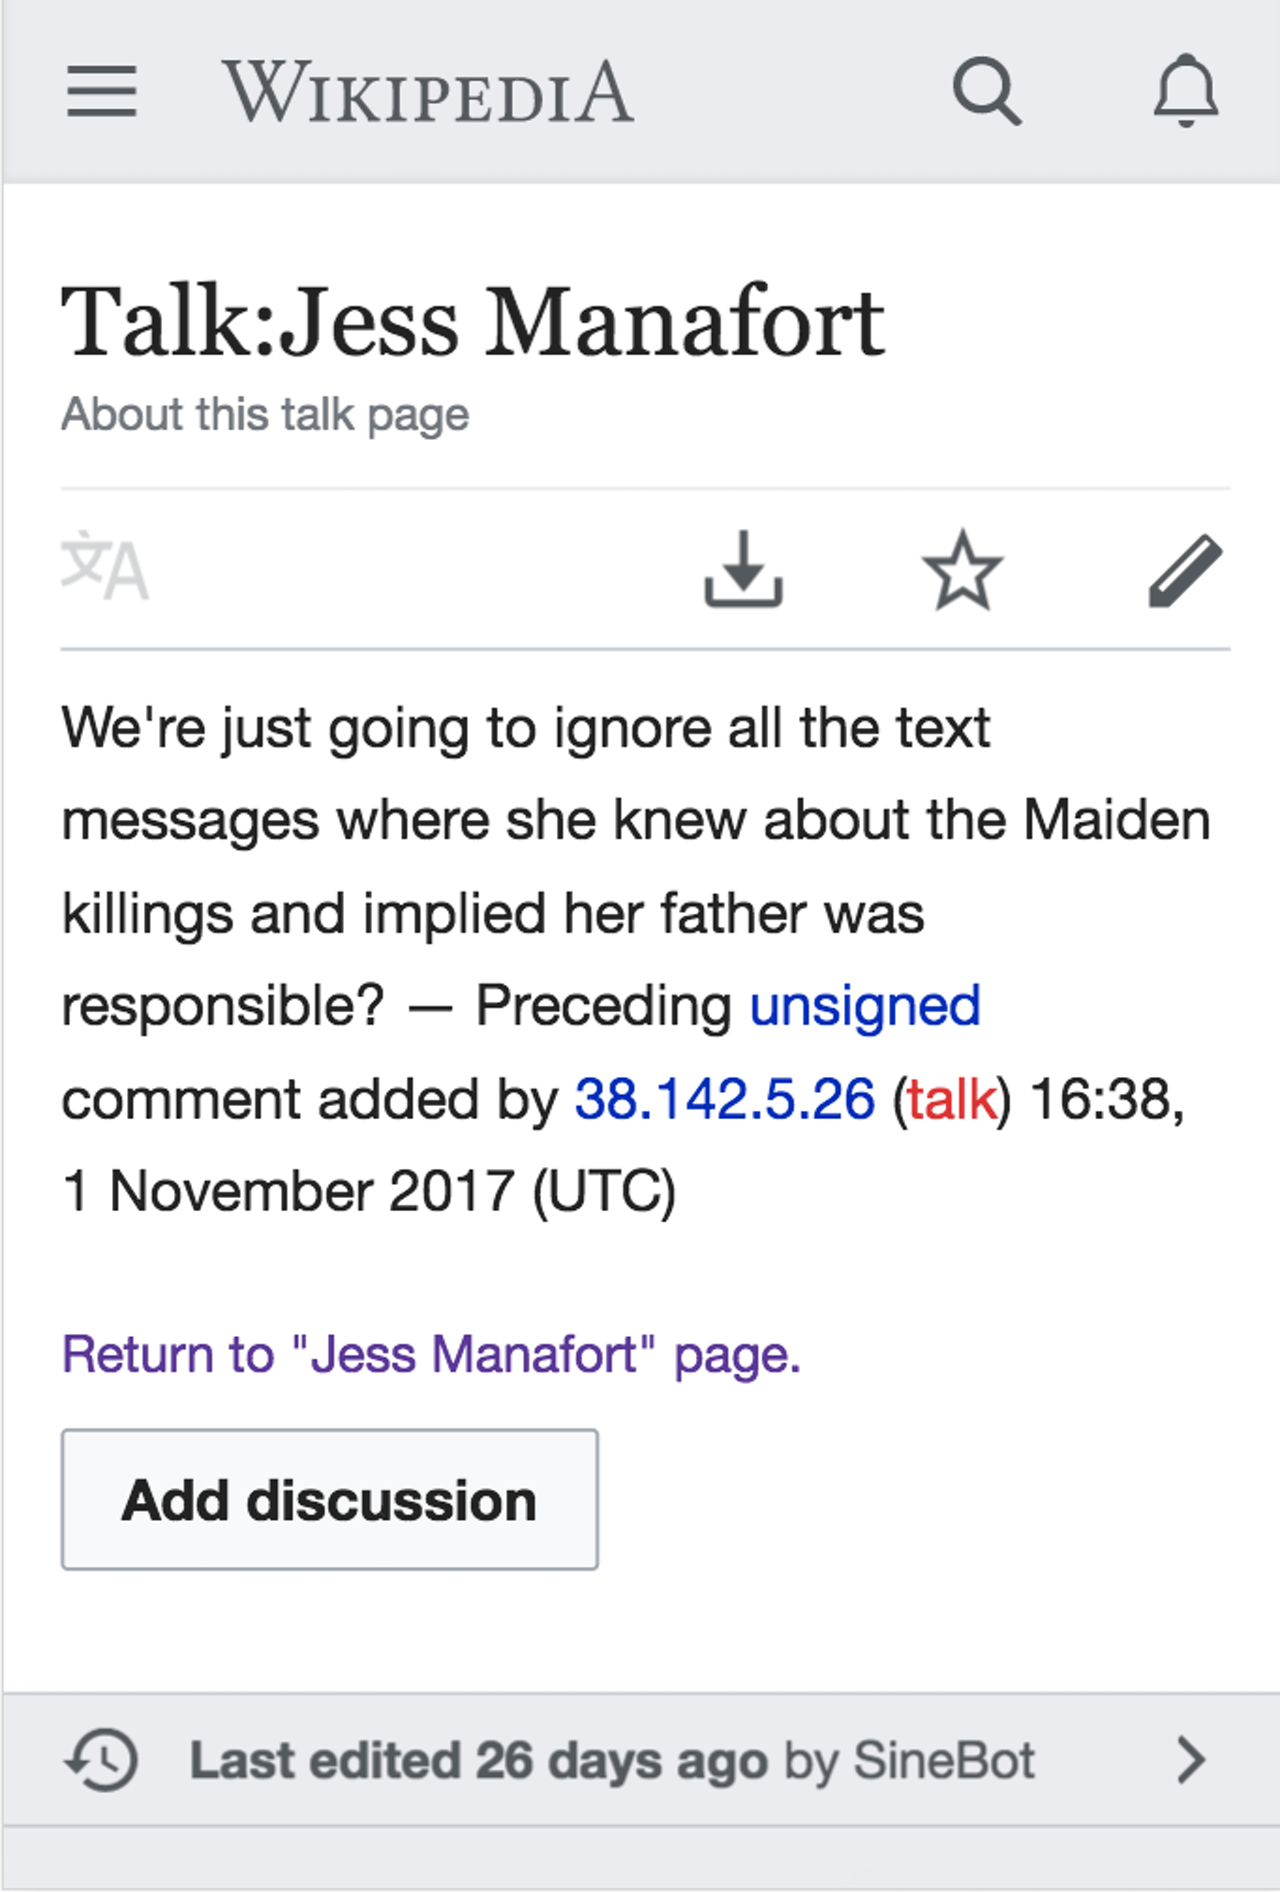 One Wikipedia user had questions about the breadth of Jess Manfort's entry.